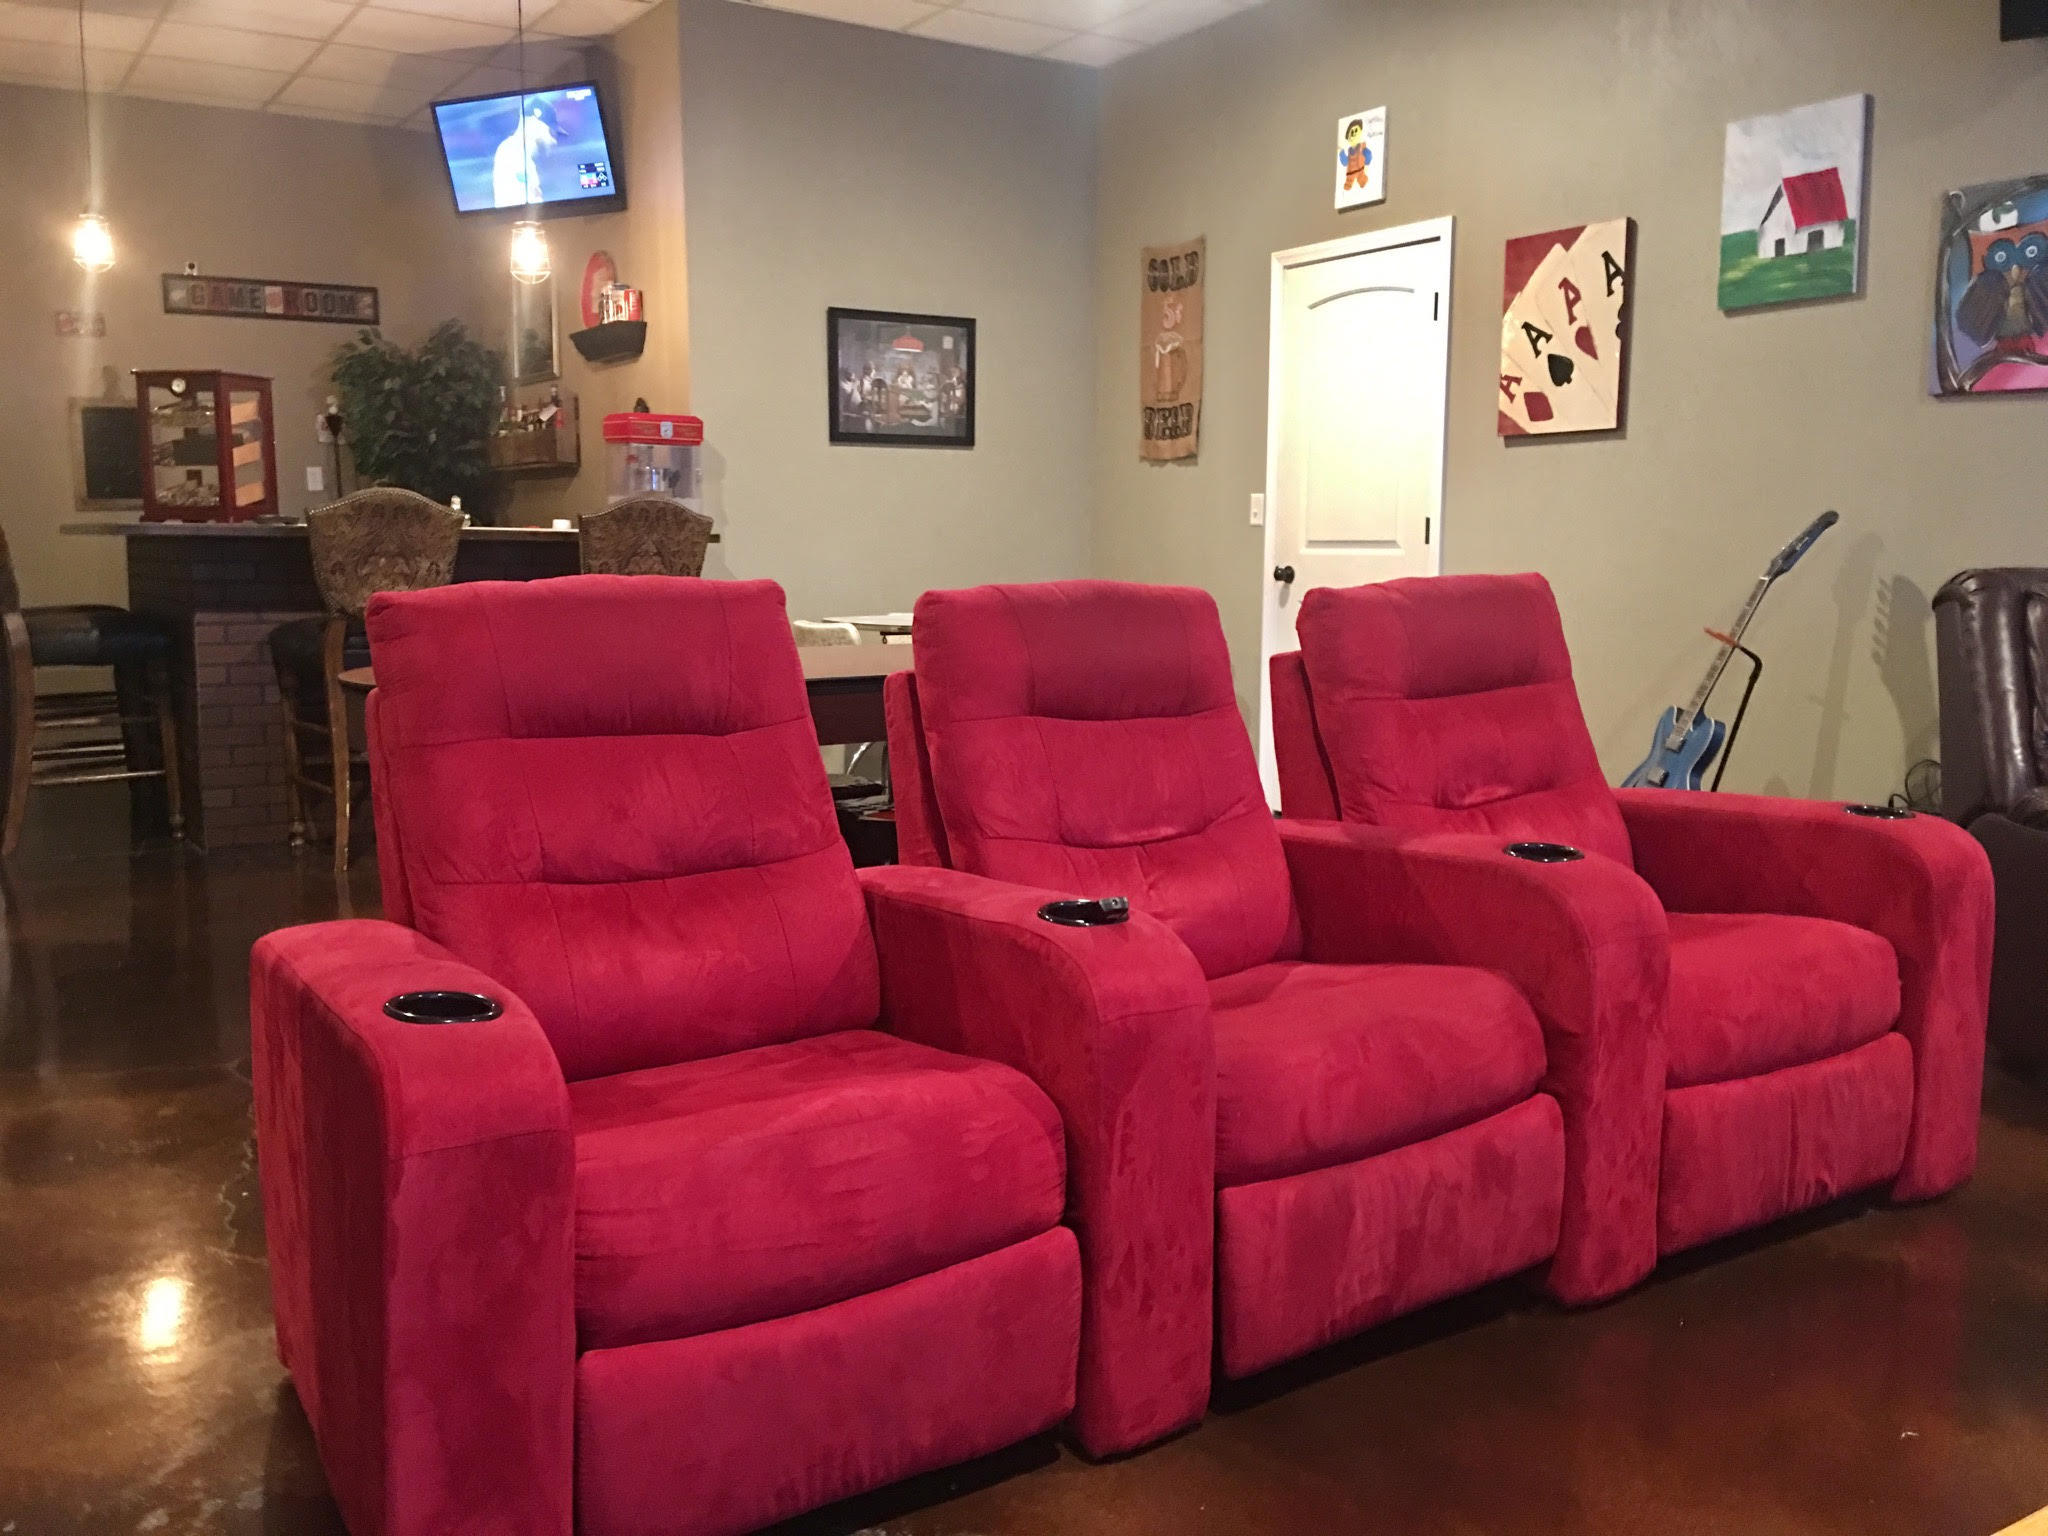 curtis-theater-red-chairs-2